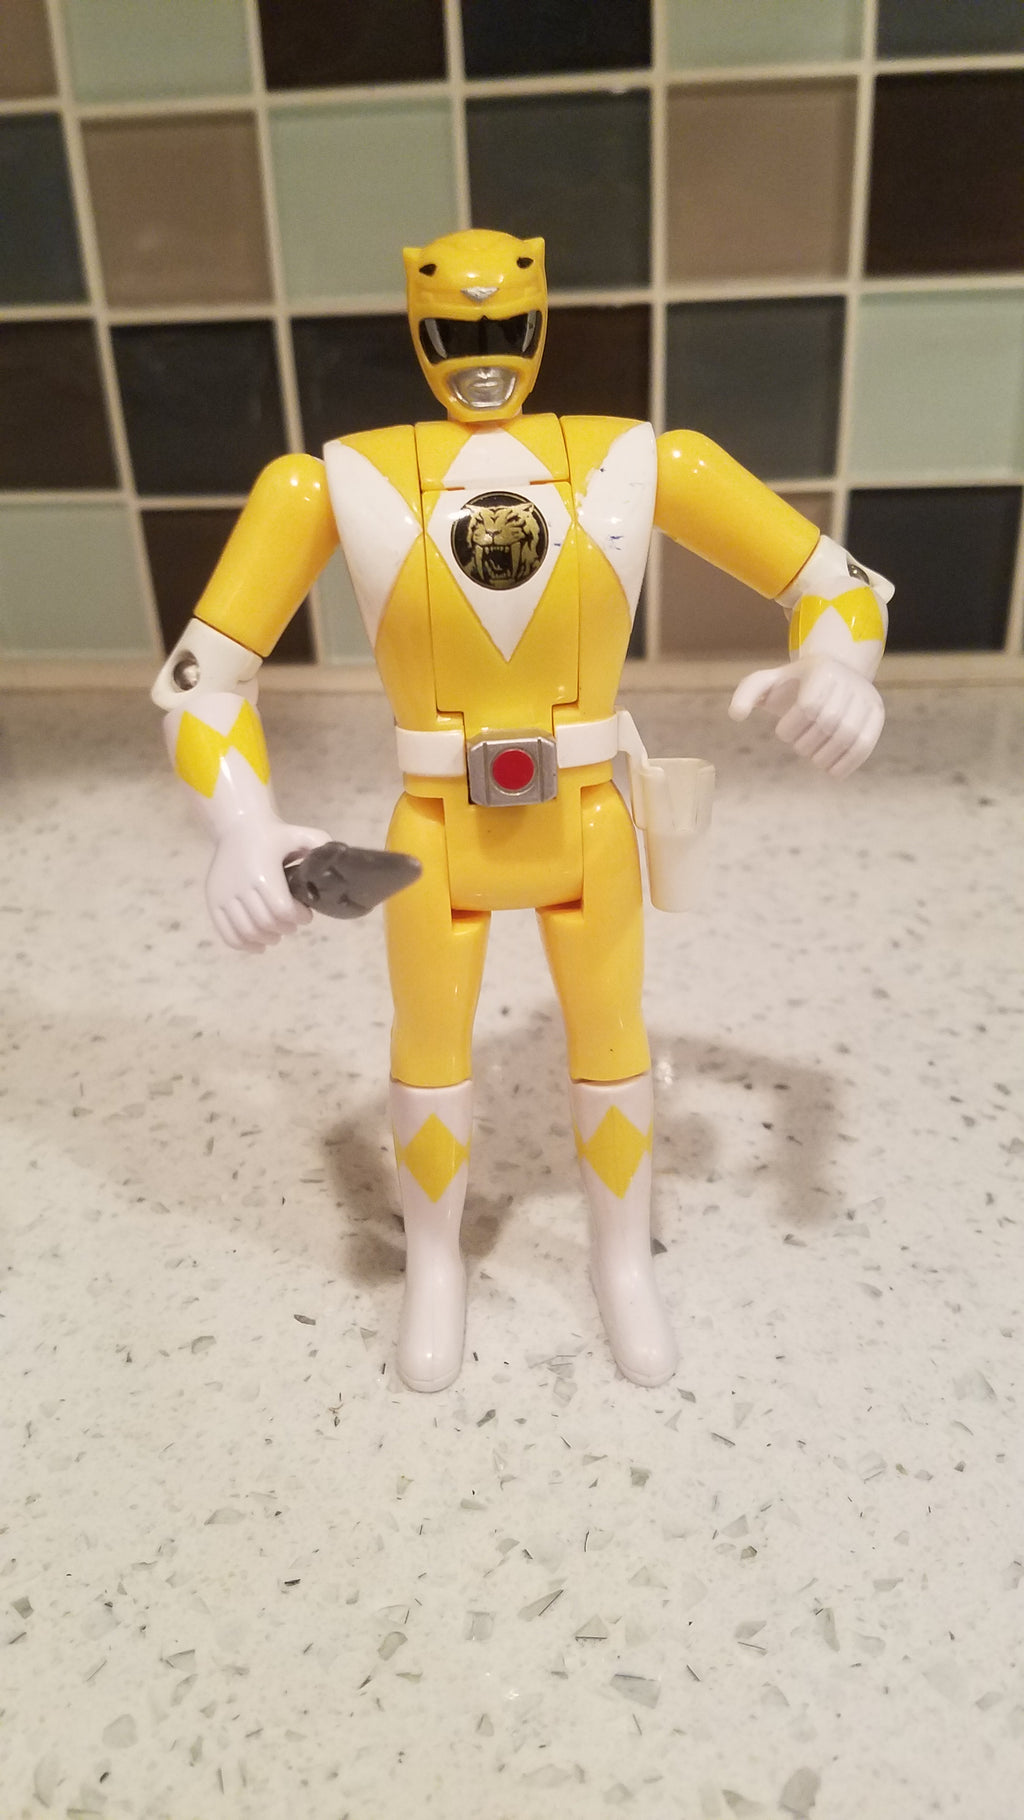 BANDAI Mighty Morphin Power Ranger, Auto Morphin Yellow Ranger (1993)